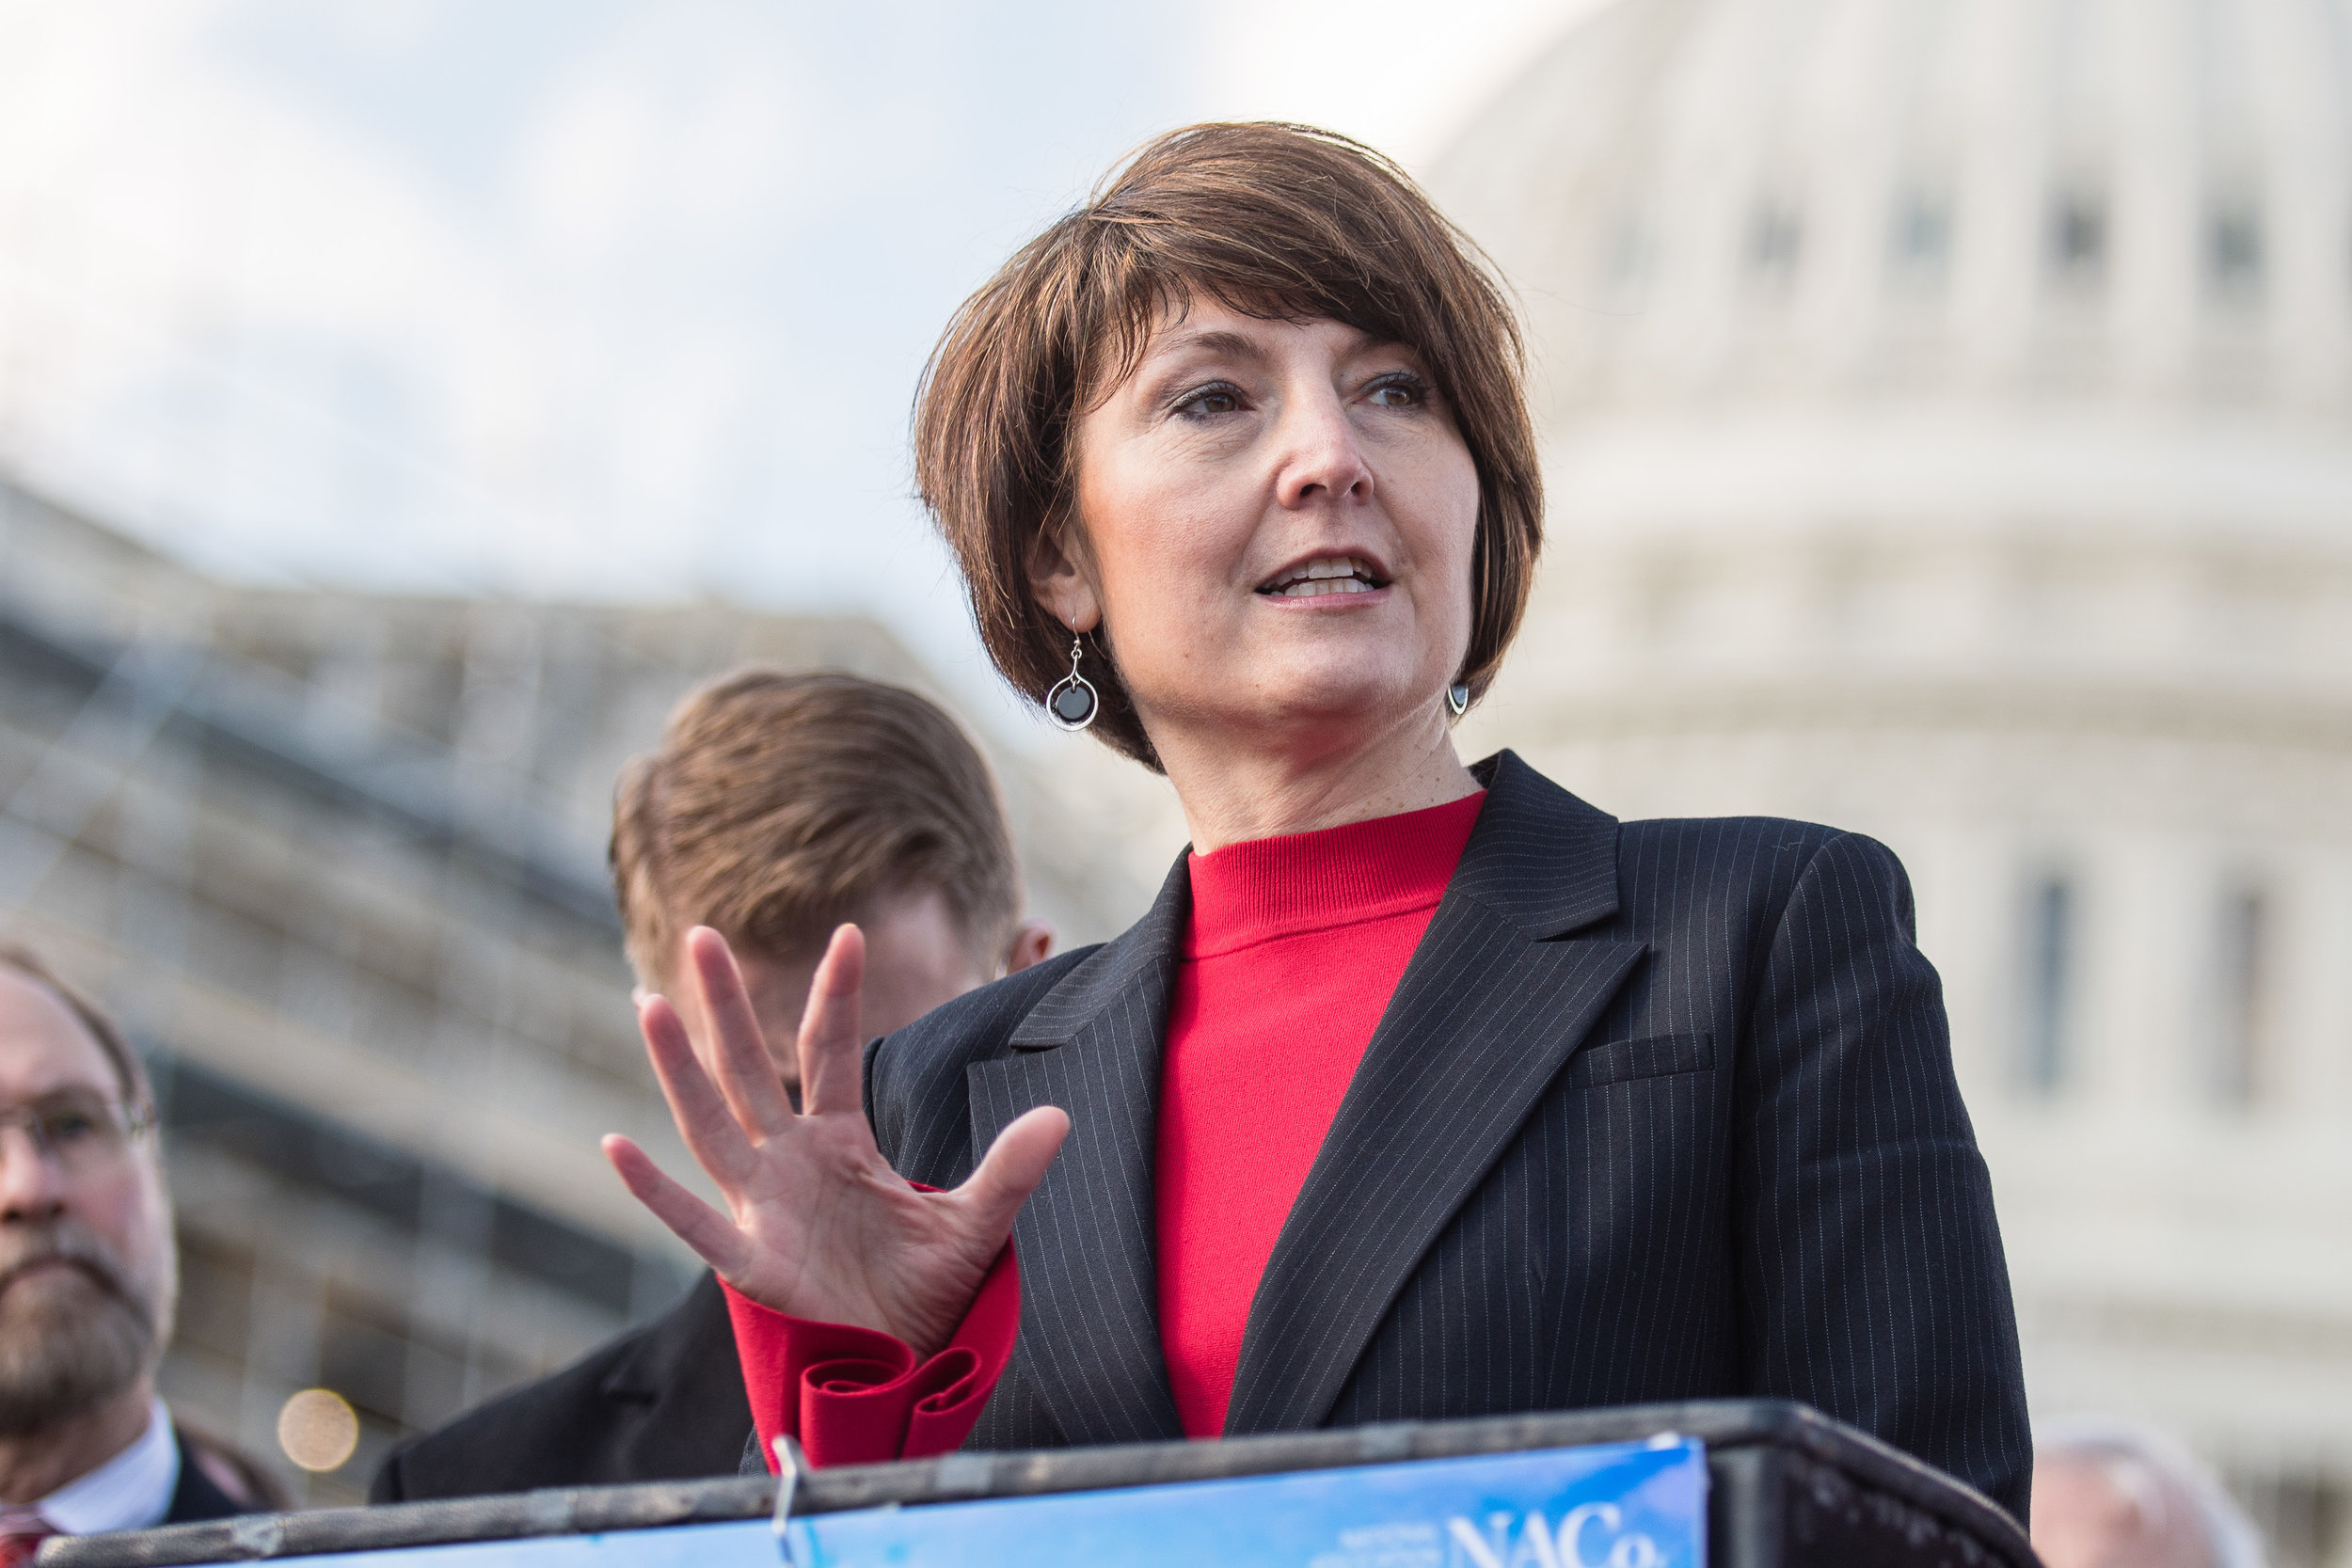 Rep. Cathy McMorris Rodgers in front of the US Capitol Dome